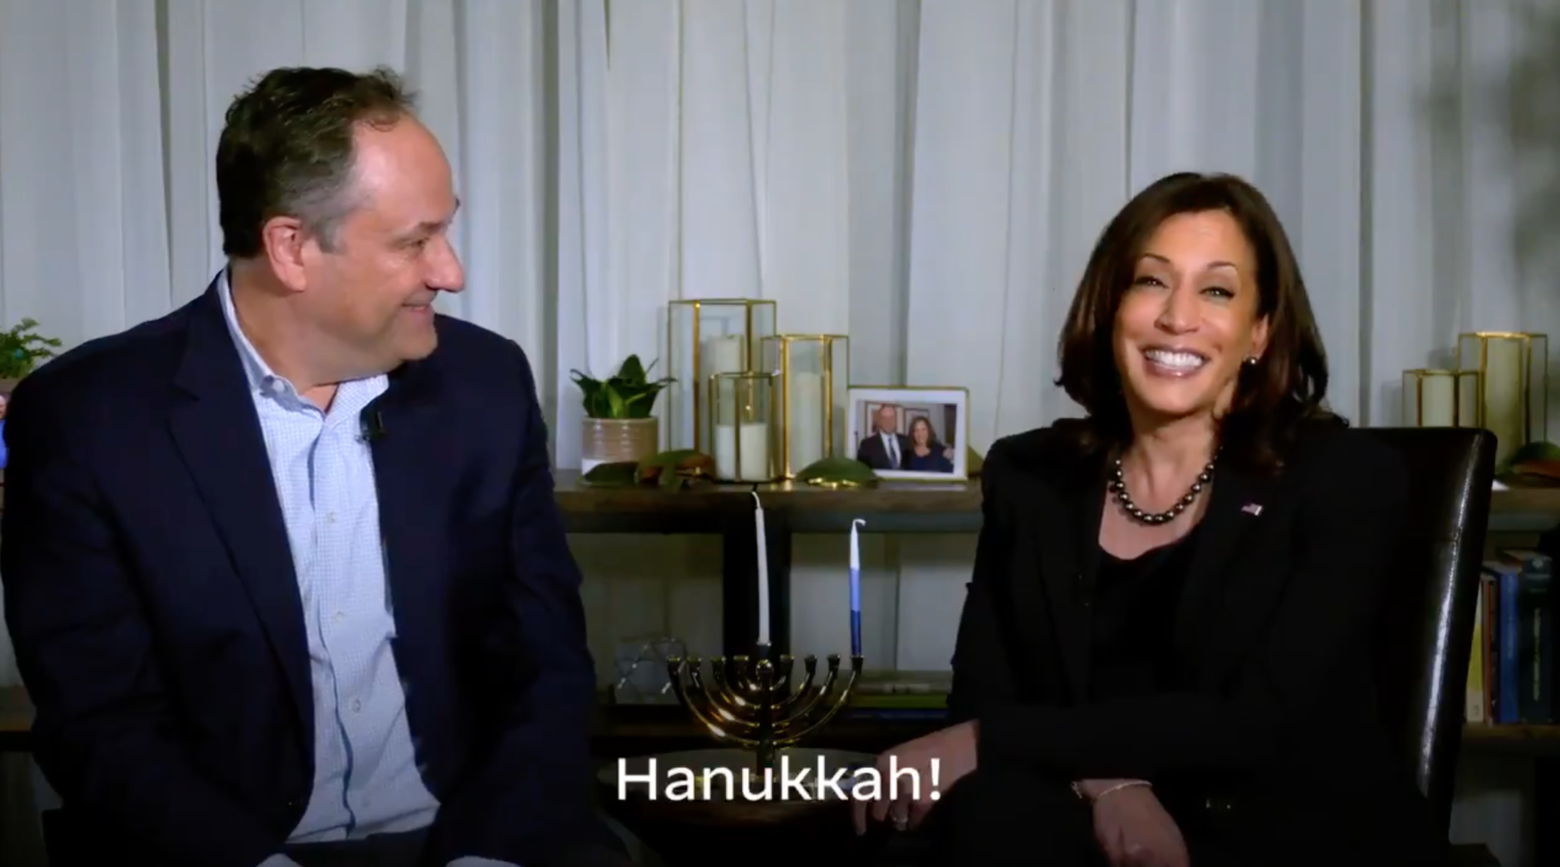 Vice President-elect Kamala Harris and husband Doug Emhoff